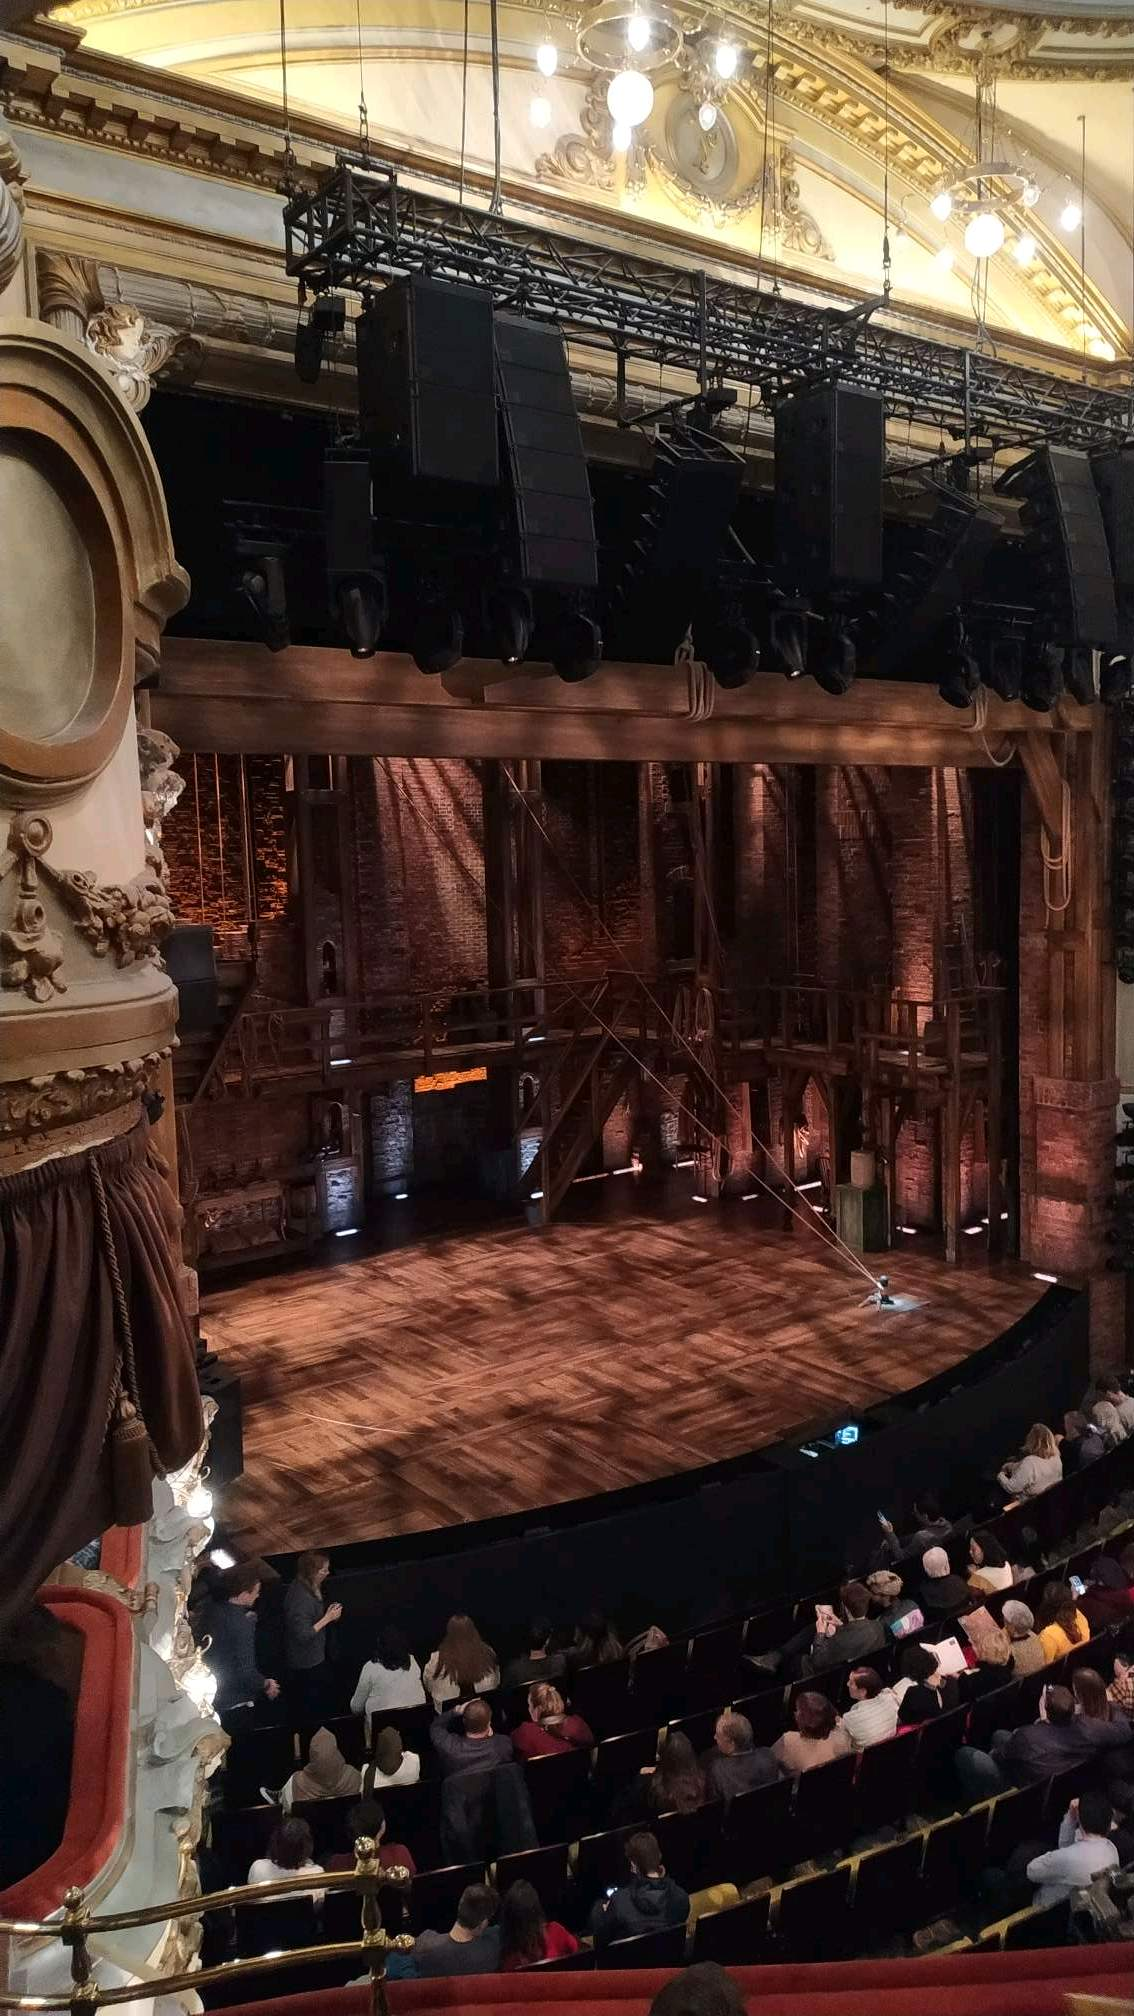 Victoria Palace Theatre Section Royal Circle Slip Row A Seat 7